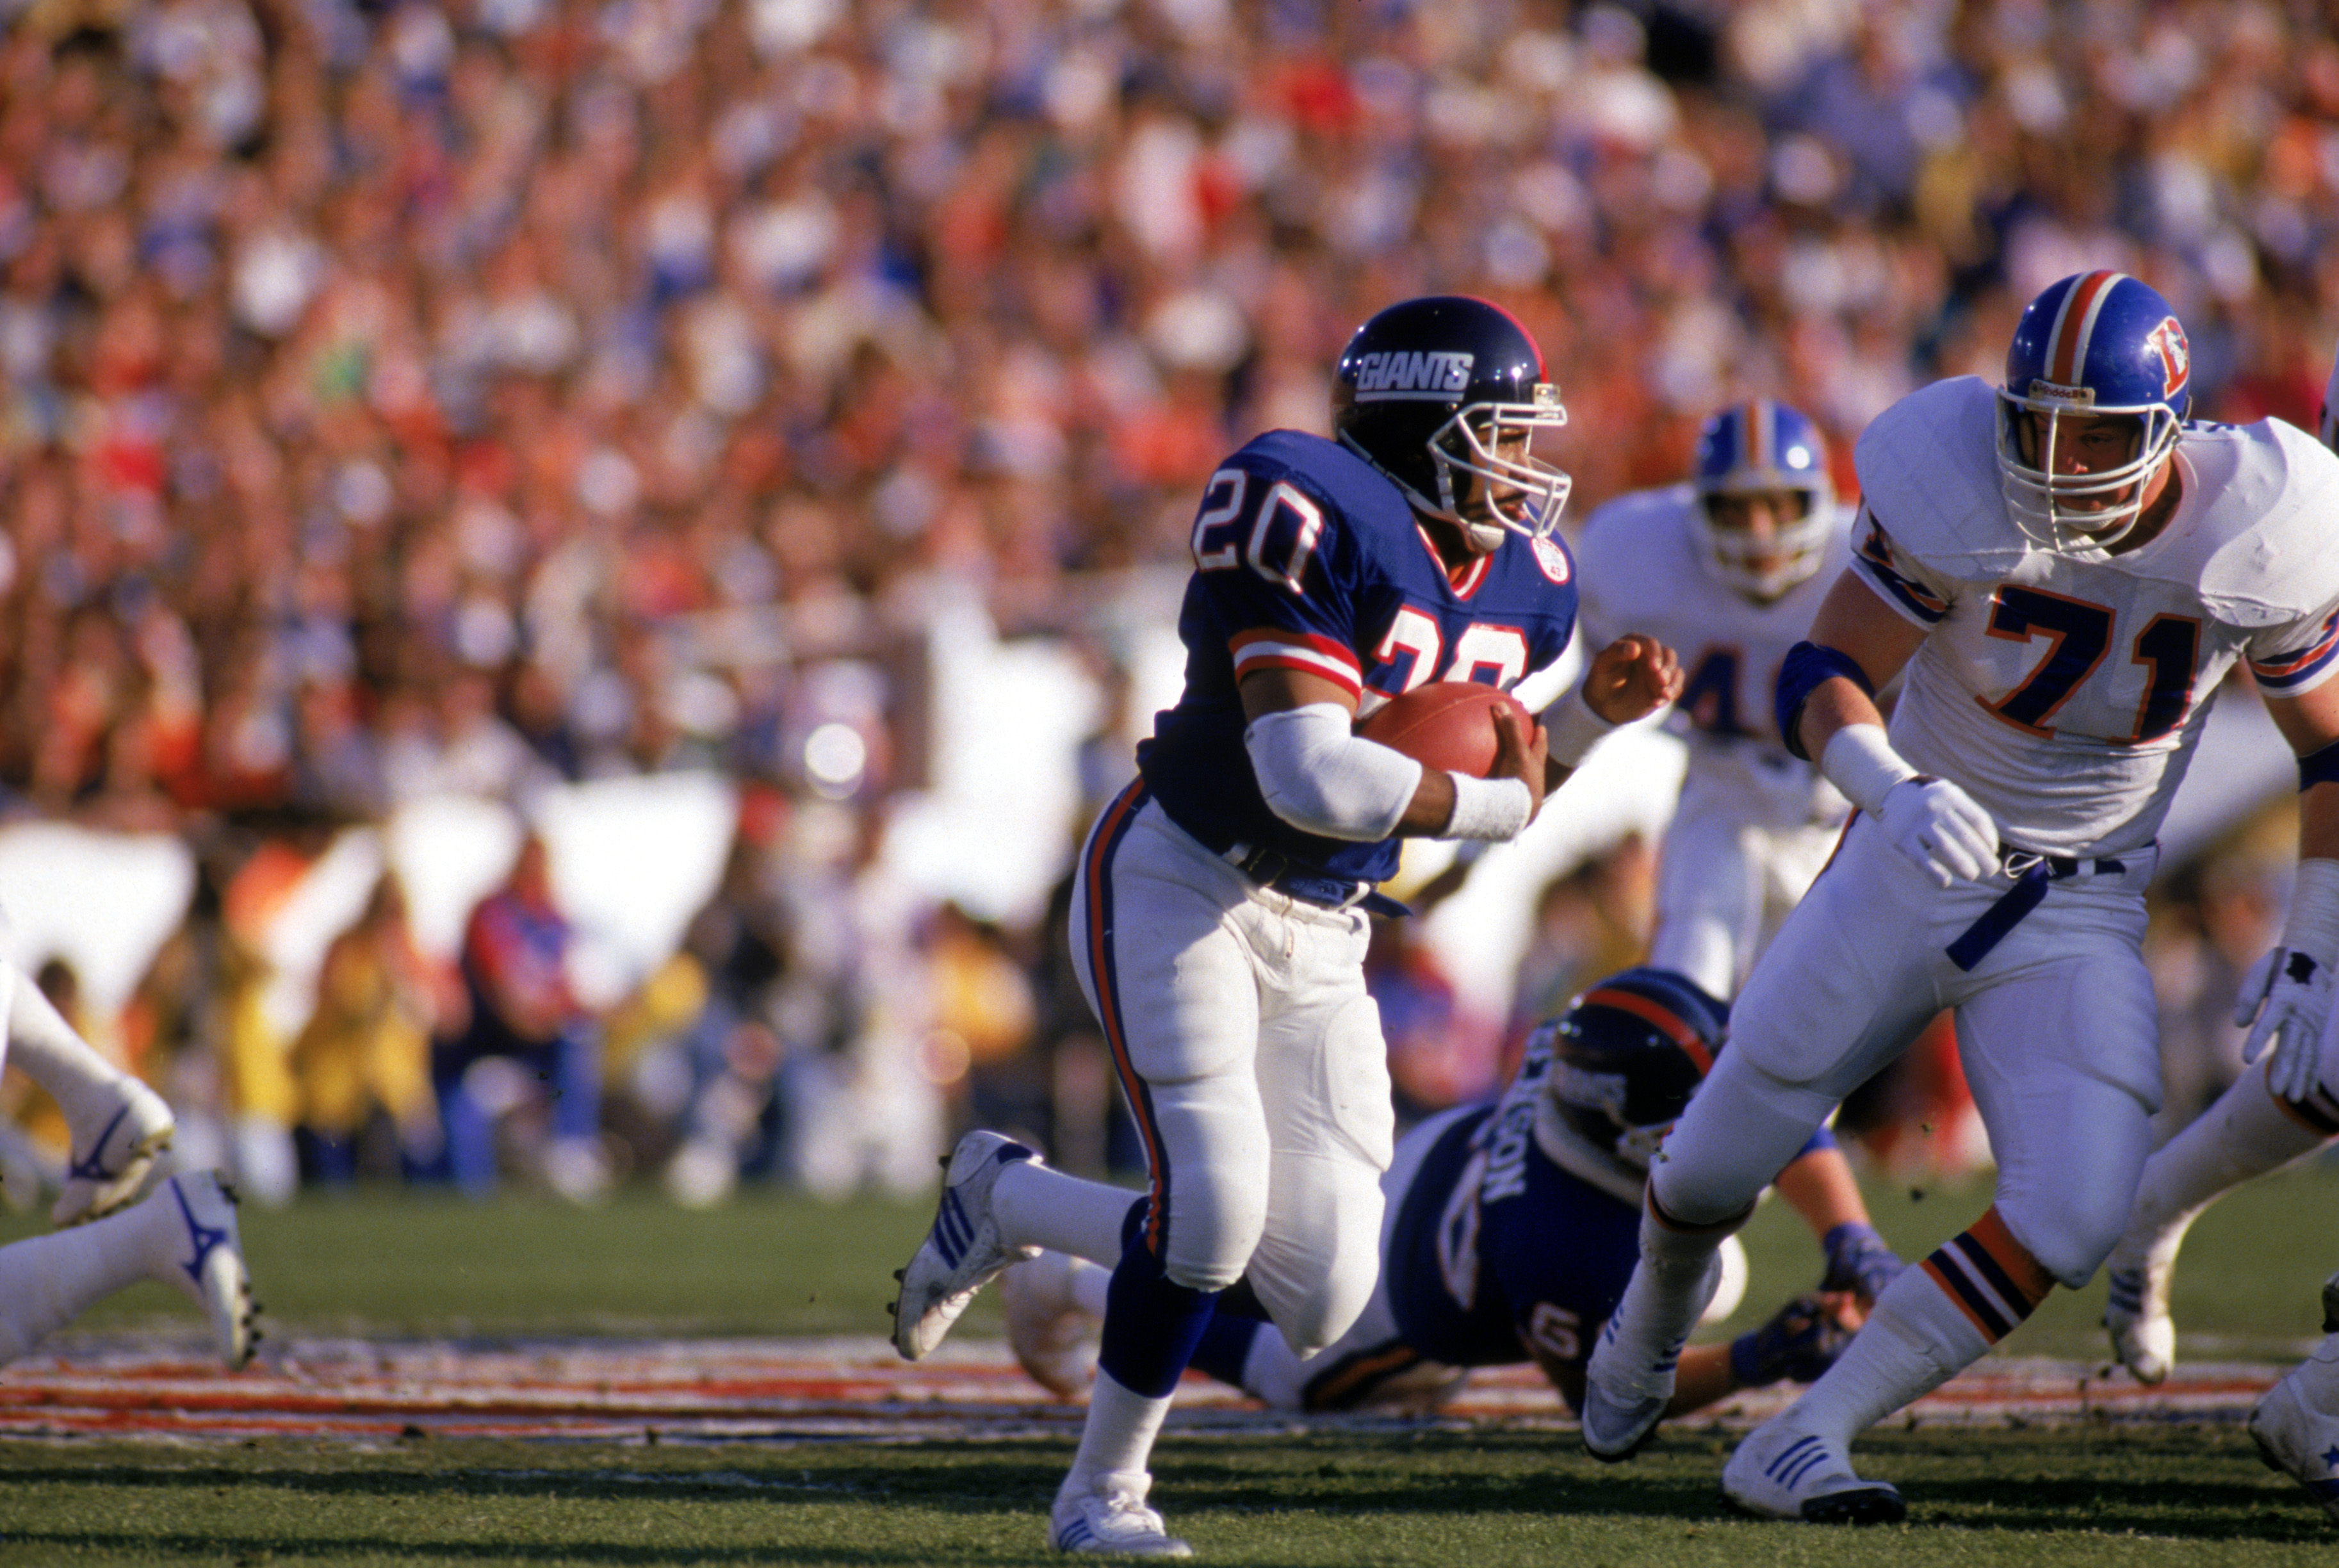 PASADENA, CA - JANUARY 25:  Running back Joe Morris #20 of the New York Giants carries the ball against nose tackle Greg Kragen #71 of the Denver Broncos during Super Bowl XXI at the Rose Bowl on January 25, 1987 in Pasadena, California. The Giants defeat